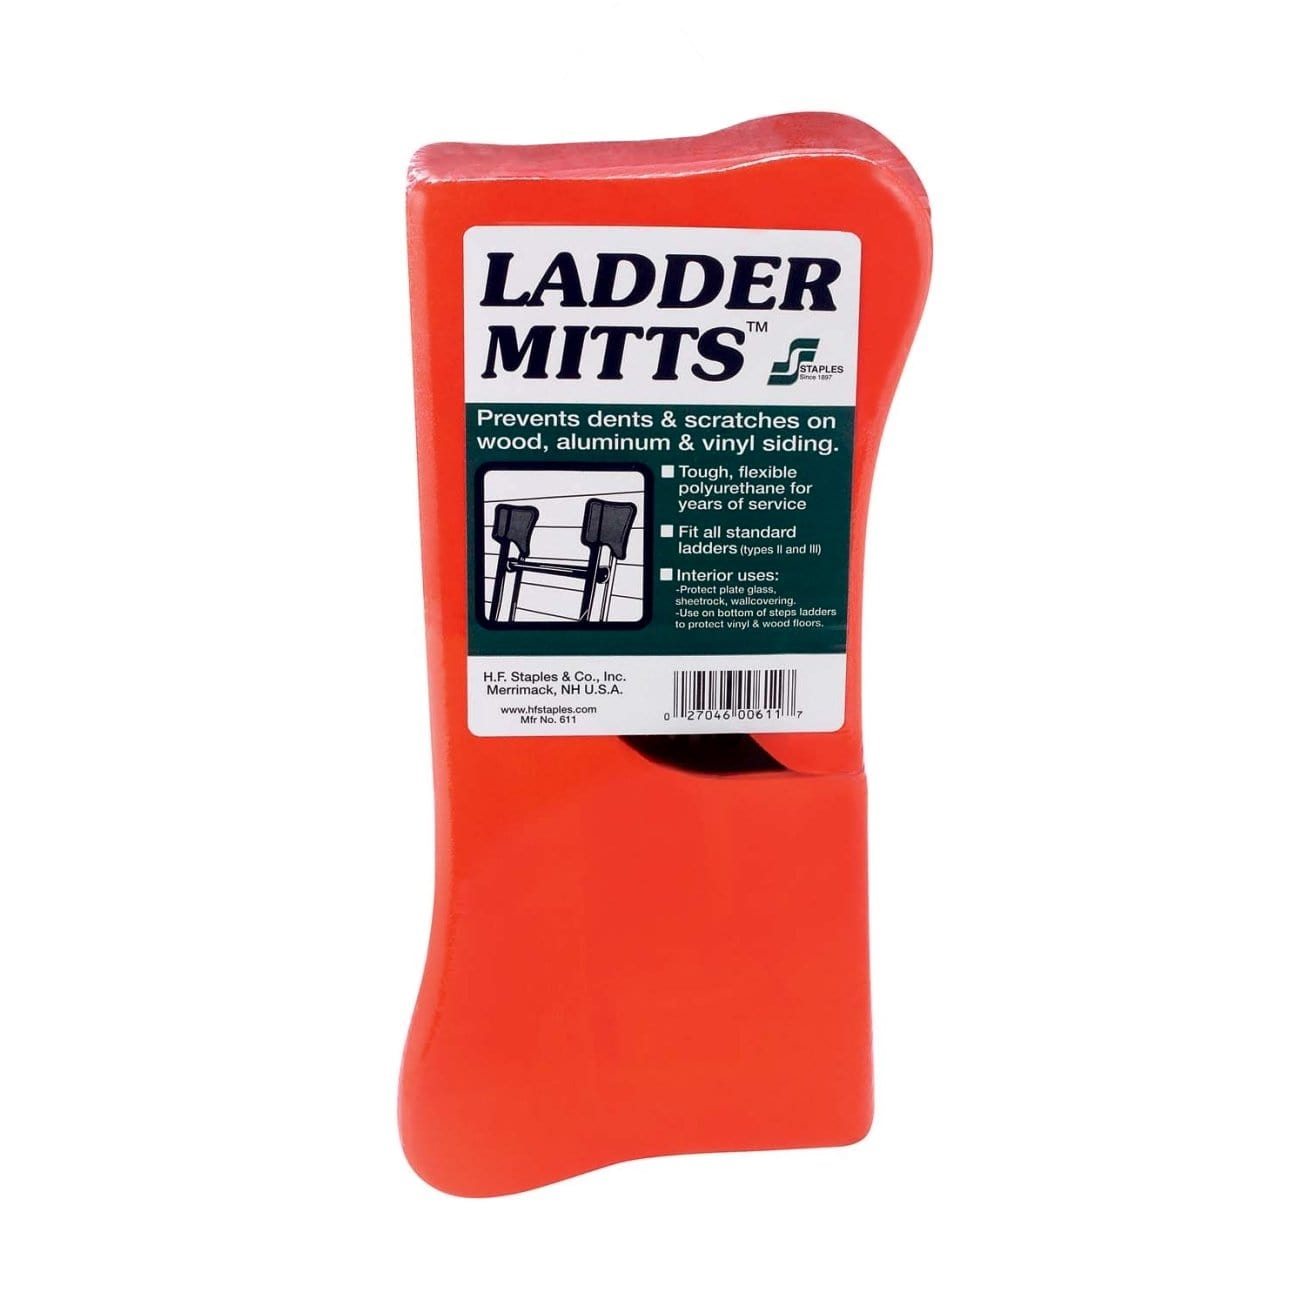 LADDER MITTS™ - Window Cleaning Warehouse Ltd